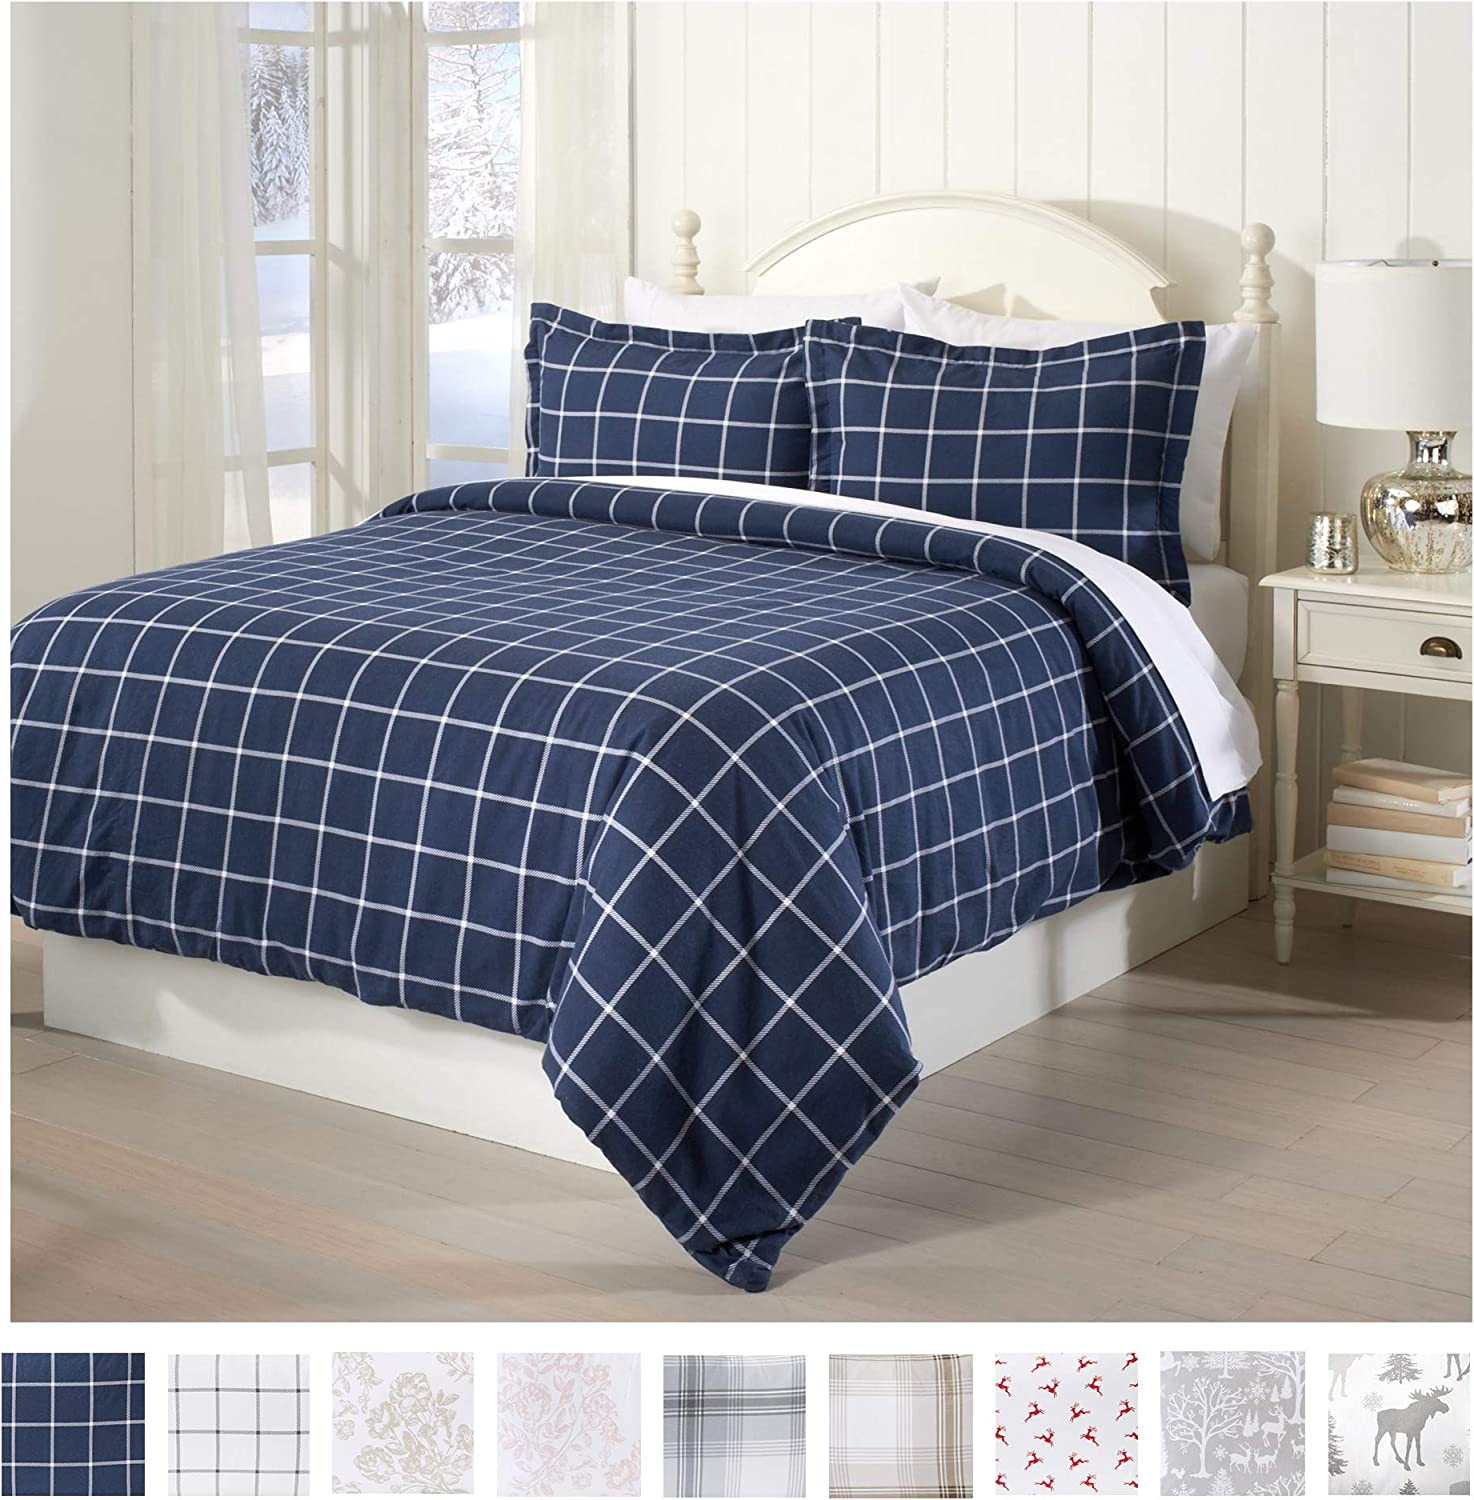 Amazon Com Great Bay Home Extra Soft Printed Flannel Duvet Cover